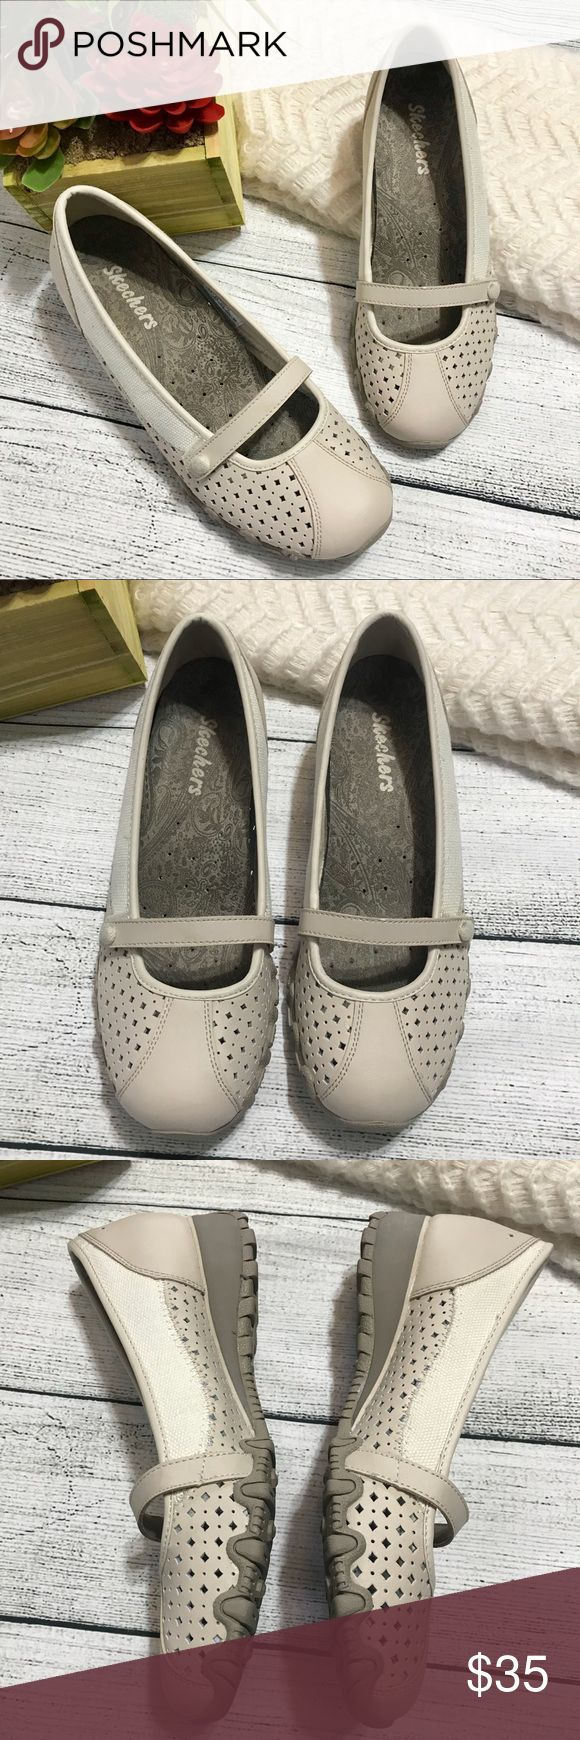 Skechers Beige Leather Slip Ons Like New 6.5 Skechers Slip-on Beige Leather Sneakers LikeNew 6.5  Eyelet details; No damage; Leather/textile upper; Skechers Shoes Sneakers